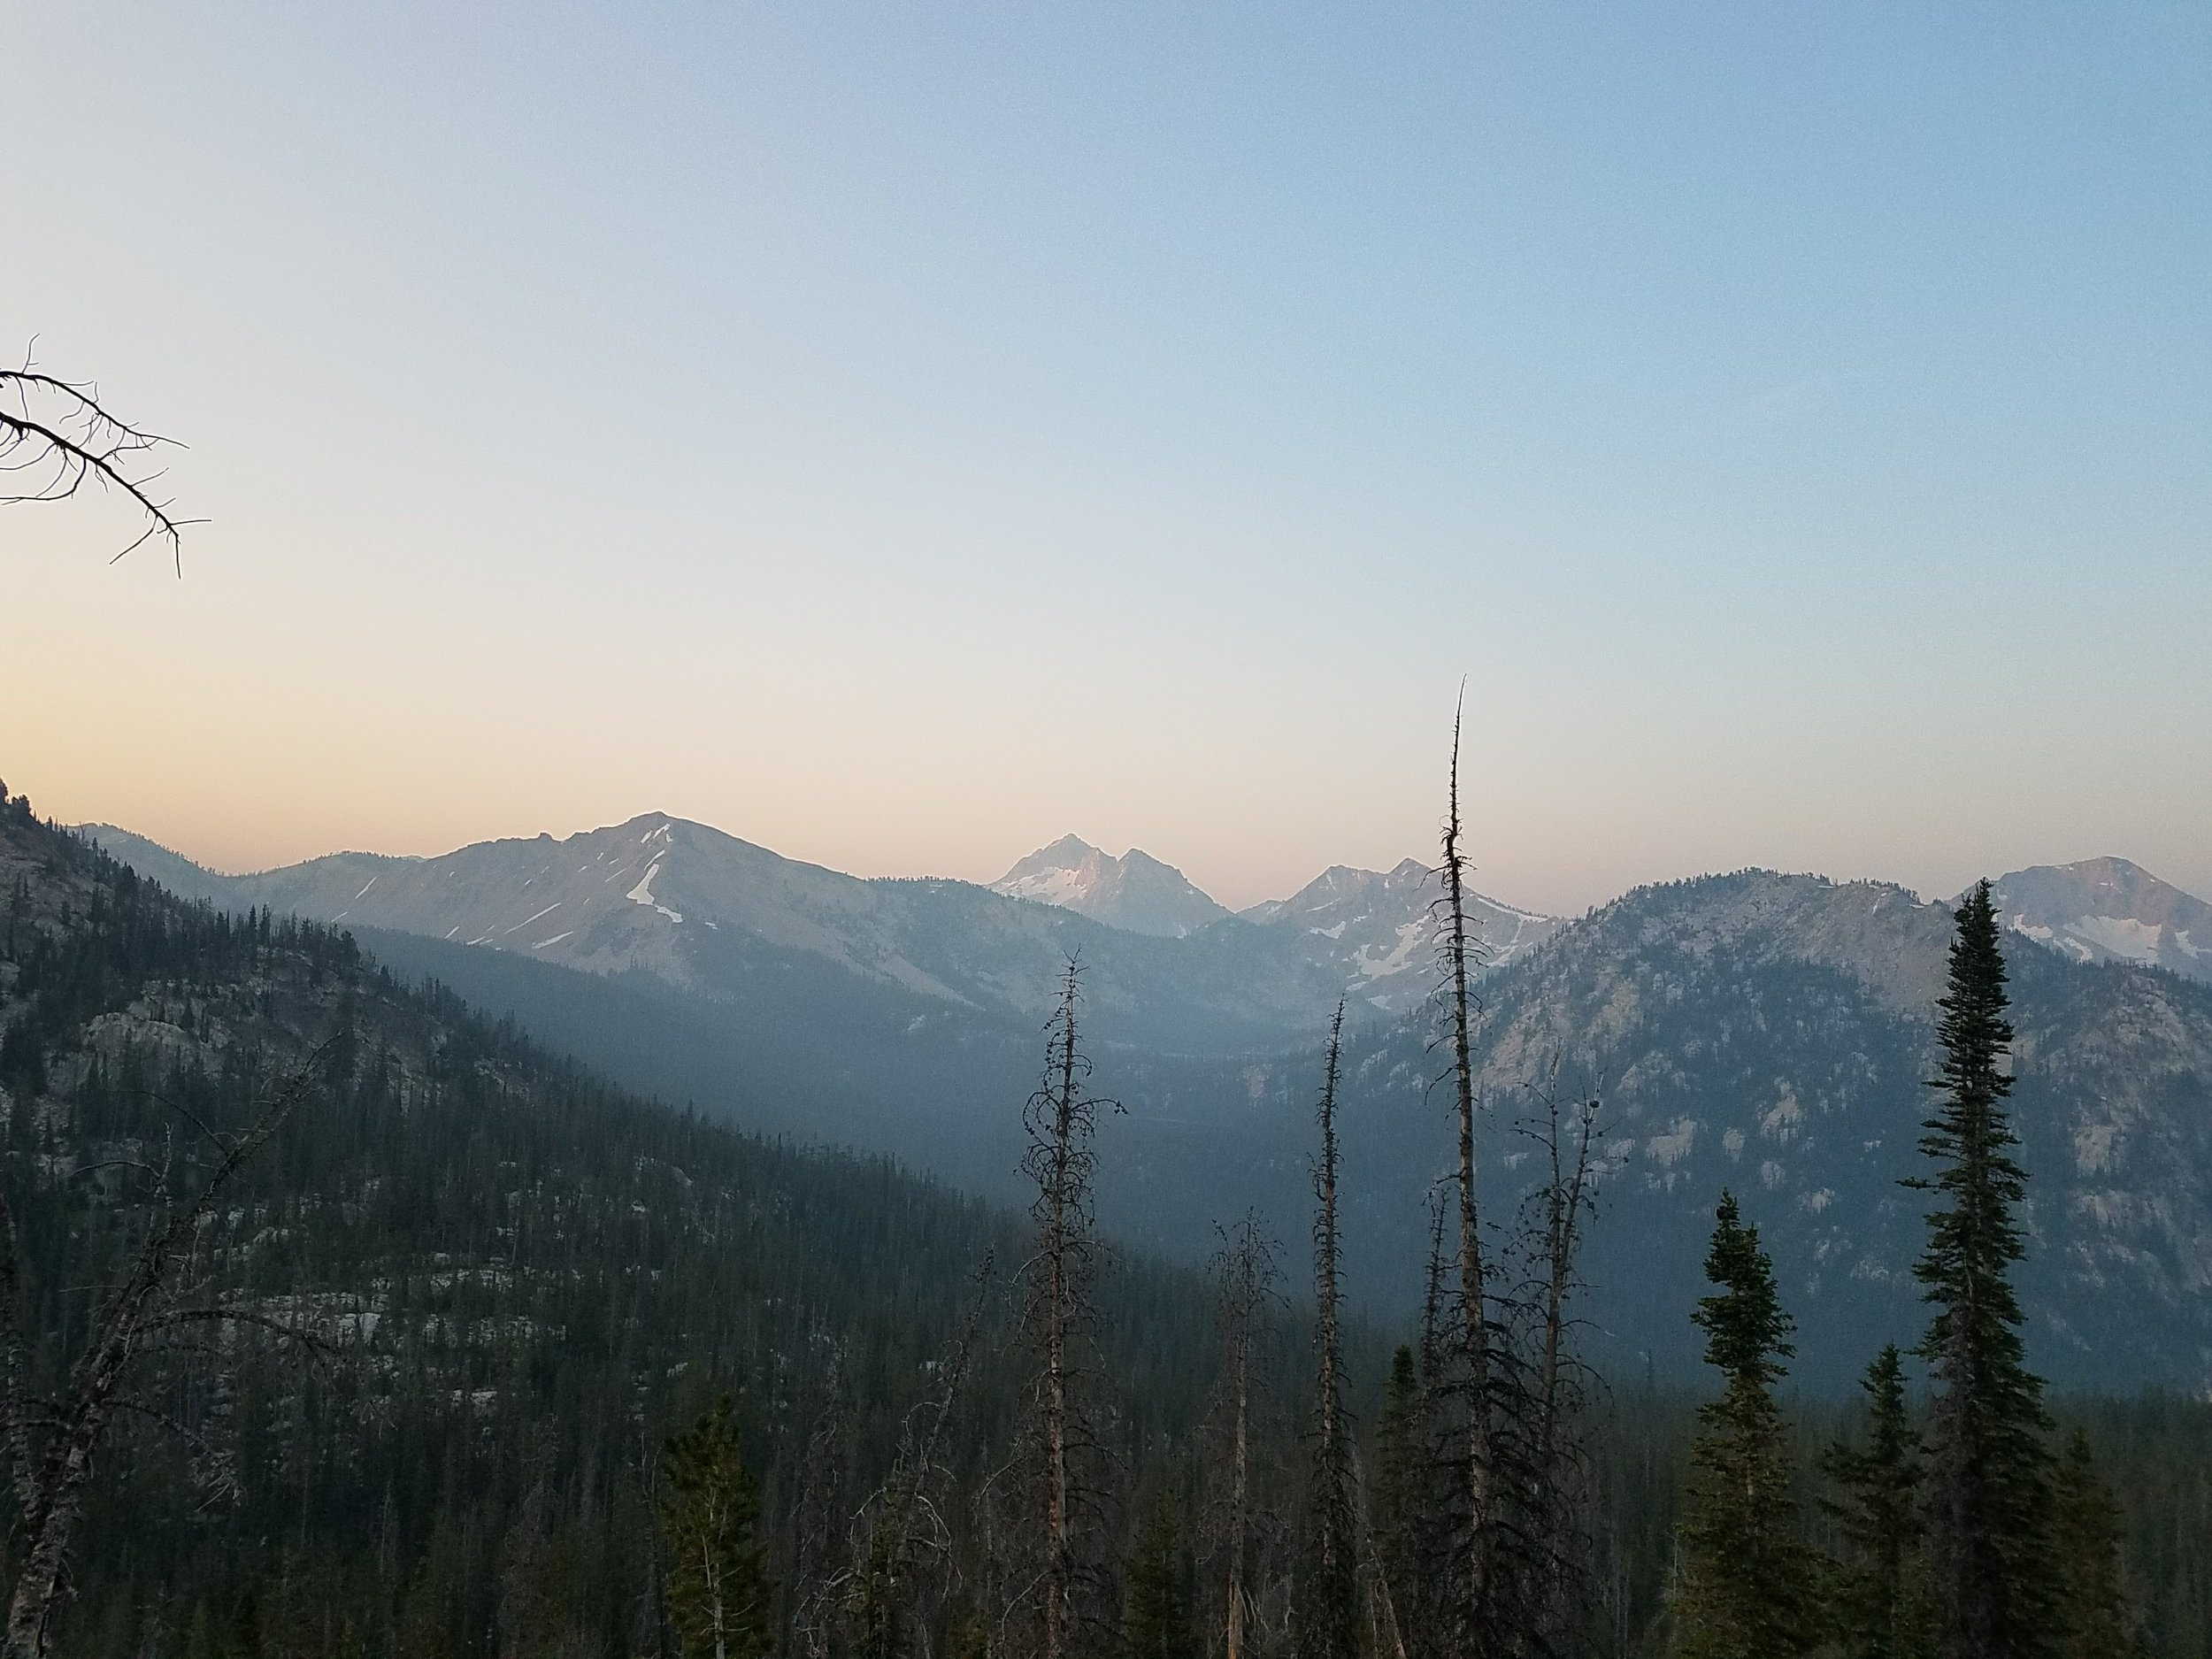 Early morning in the Sawtooths. At 6:30, it was light enough to get a picture. That's Snowyside Peak in the center.